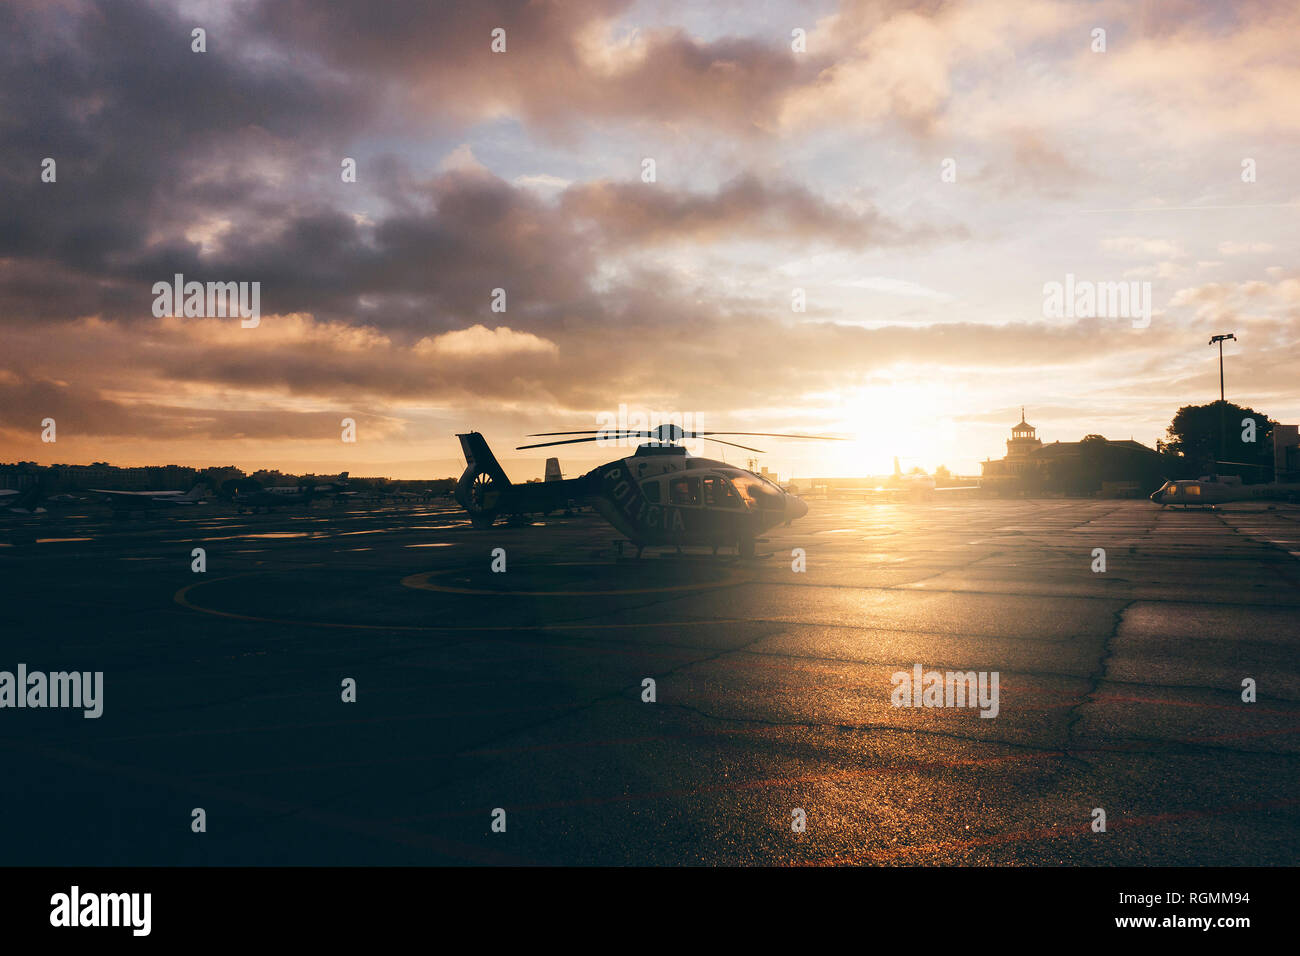 Helicopter on landing place during sunset Stock Photo